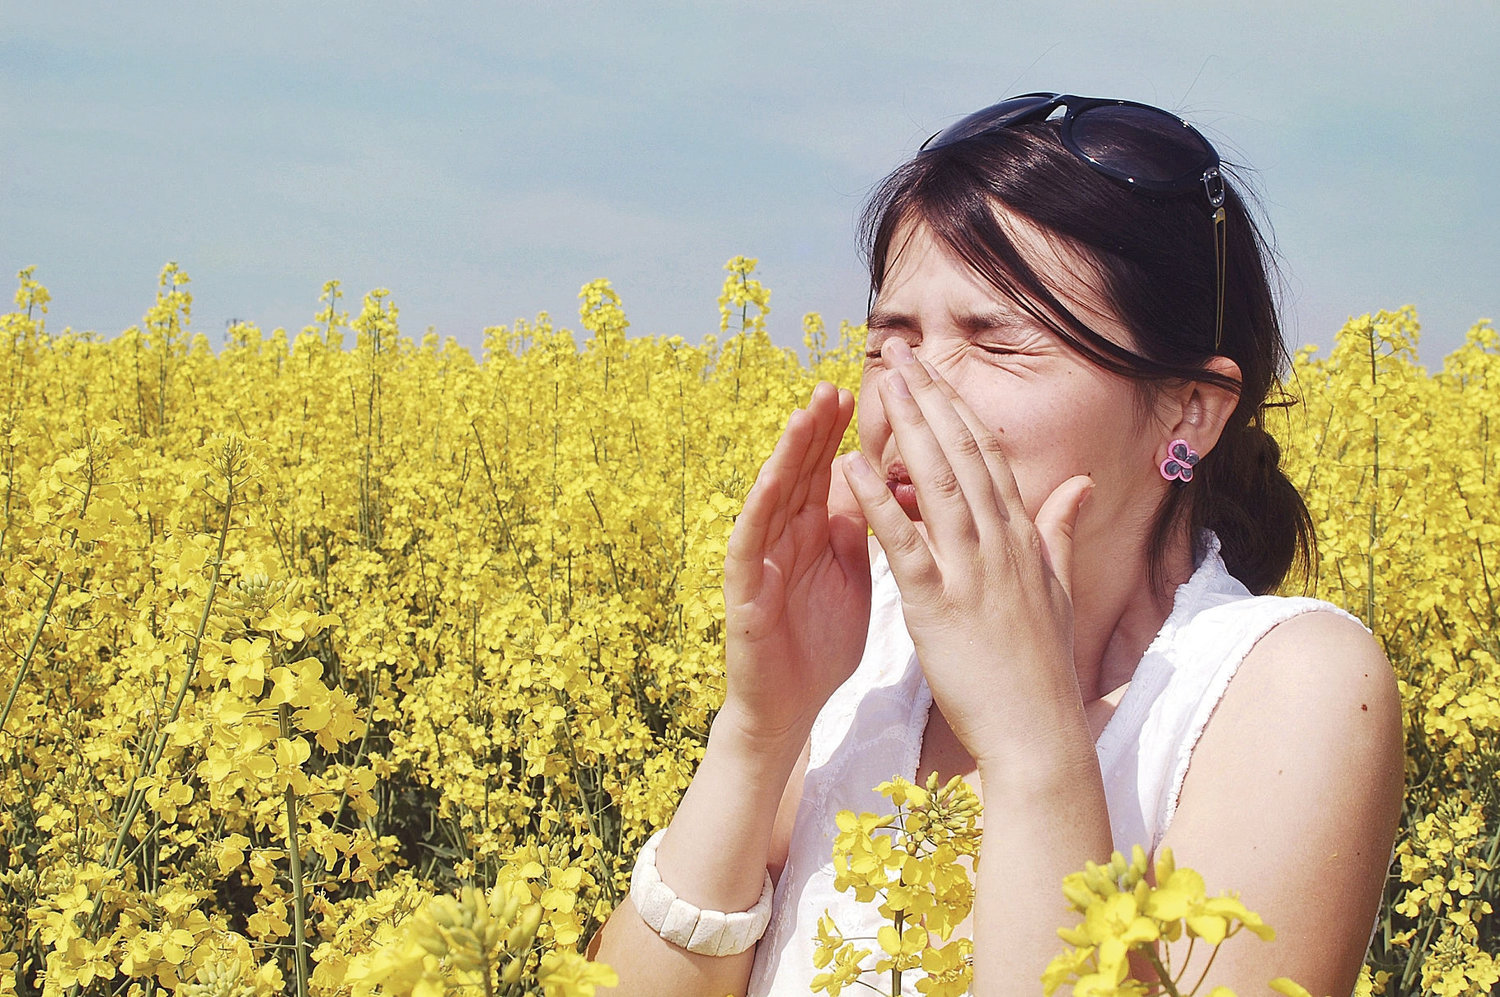 Ah-hhh choo! Plagued with allergies? New fixes, tips can help